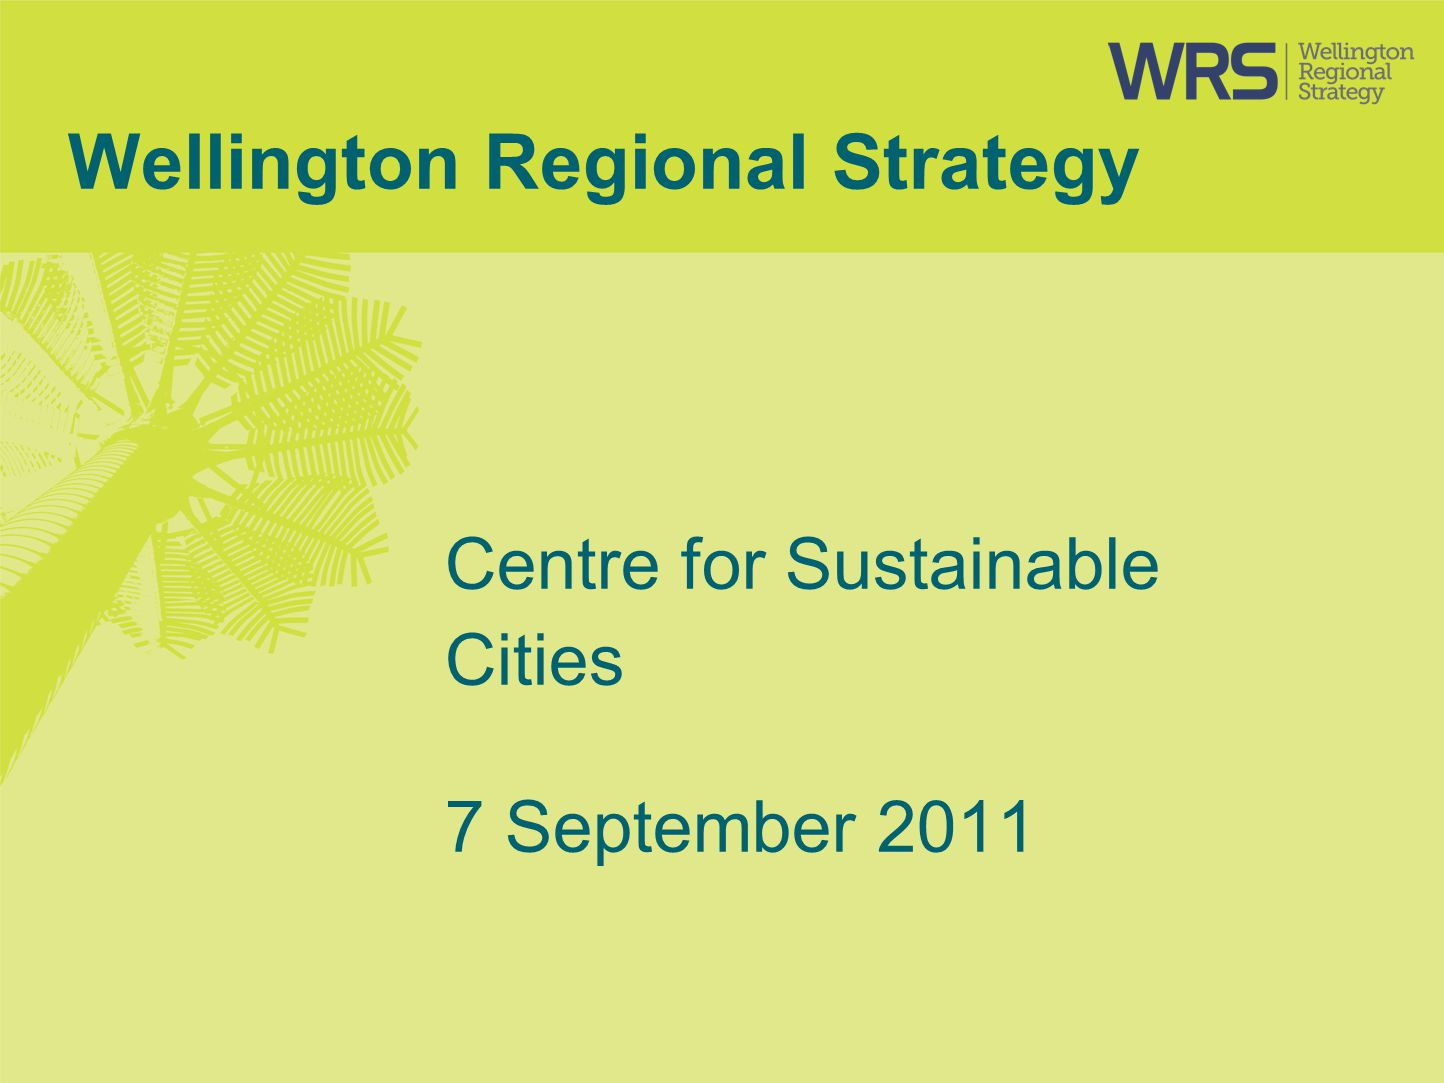 Wellington Regional Strategy Centre for Sustainable Cities 7 September 2011